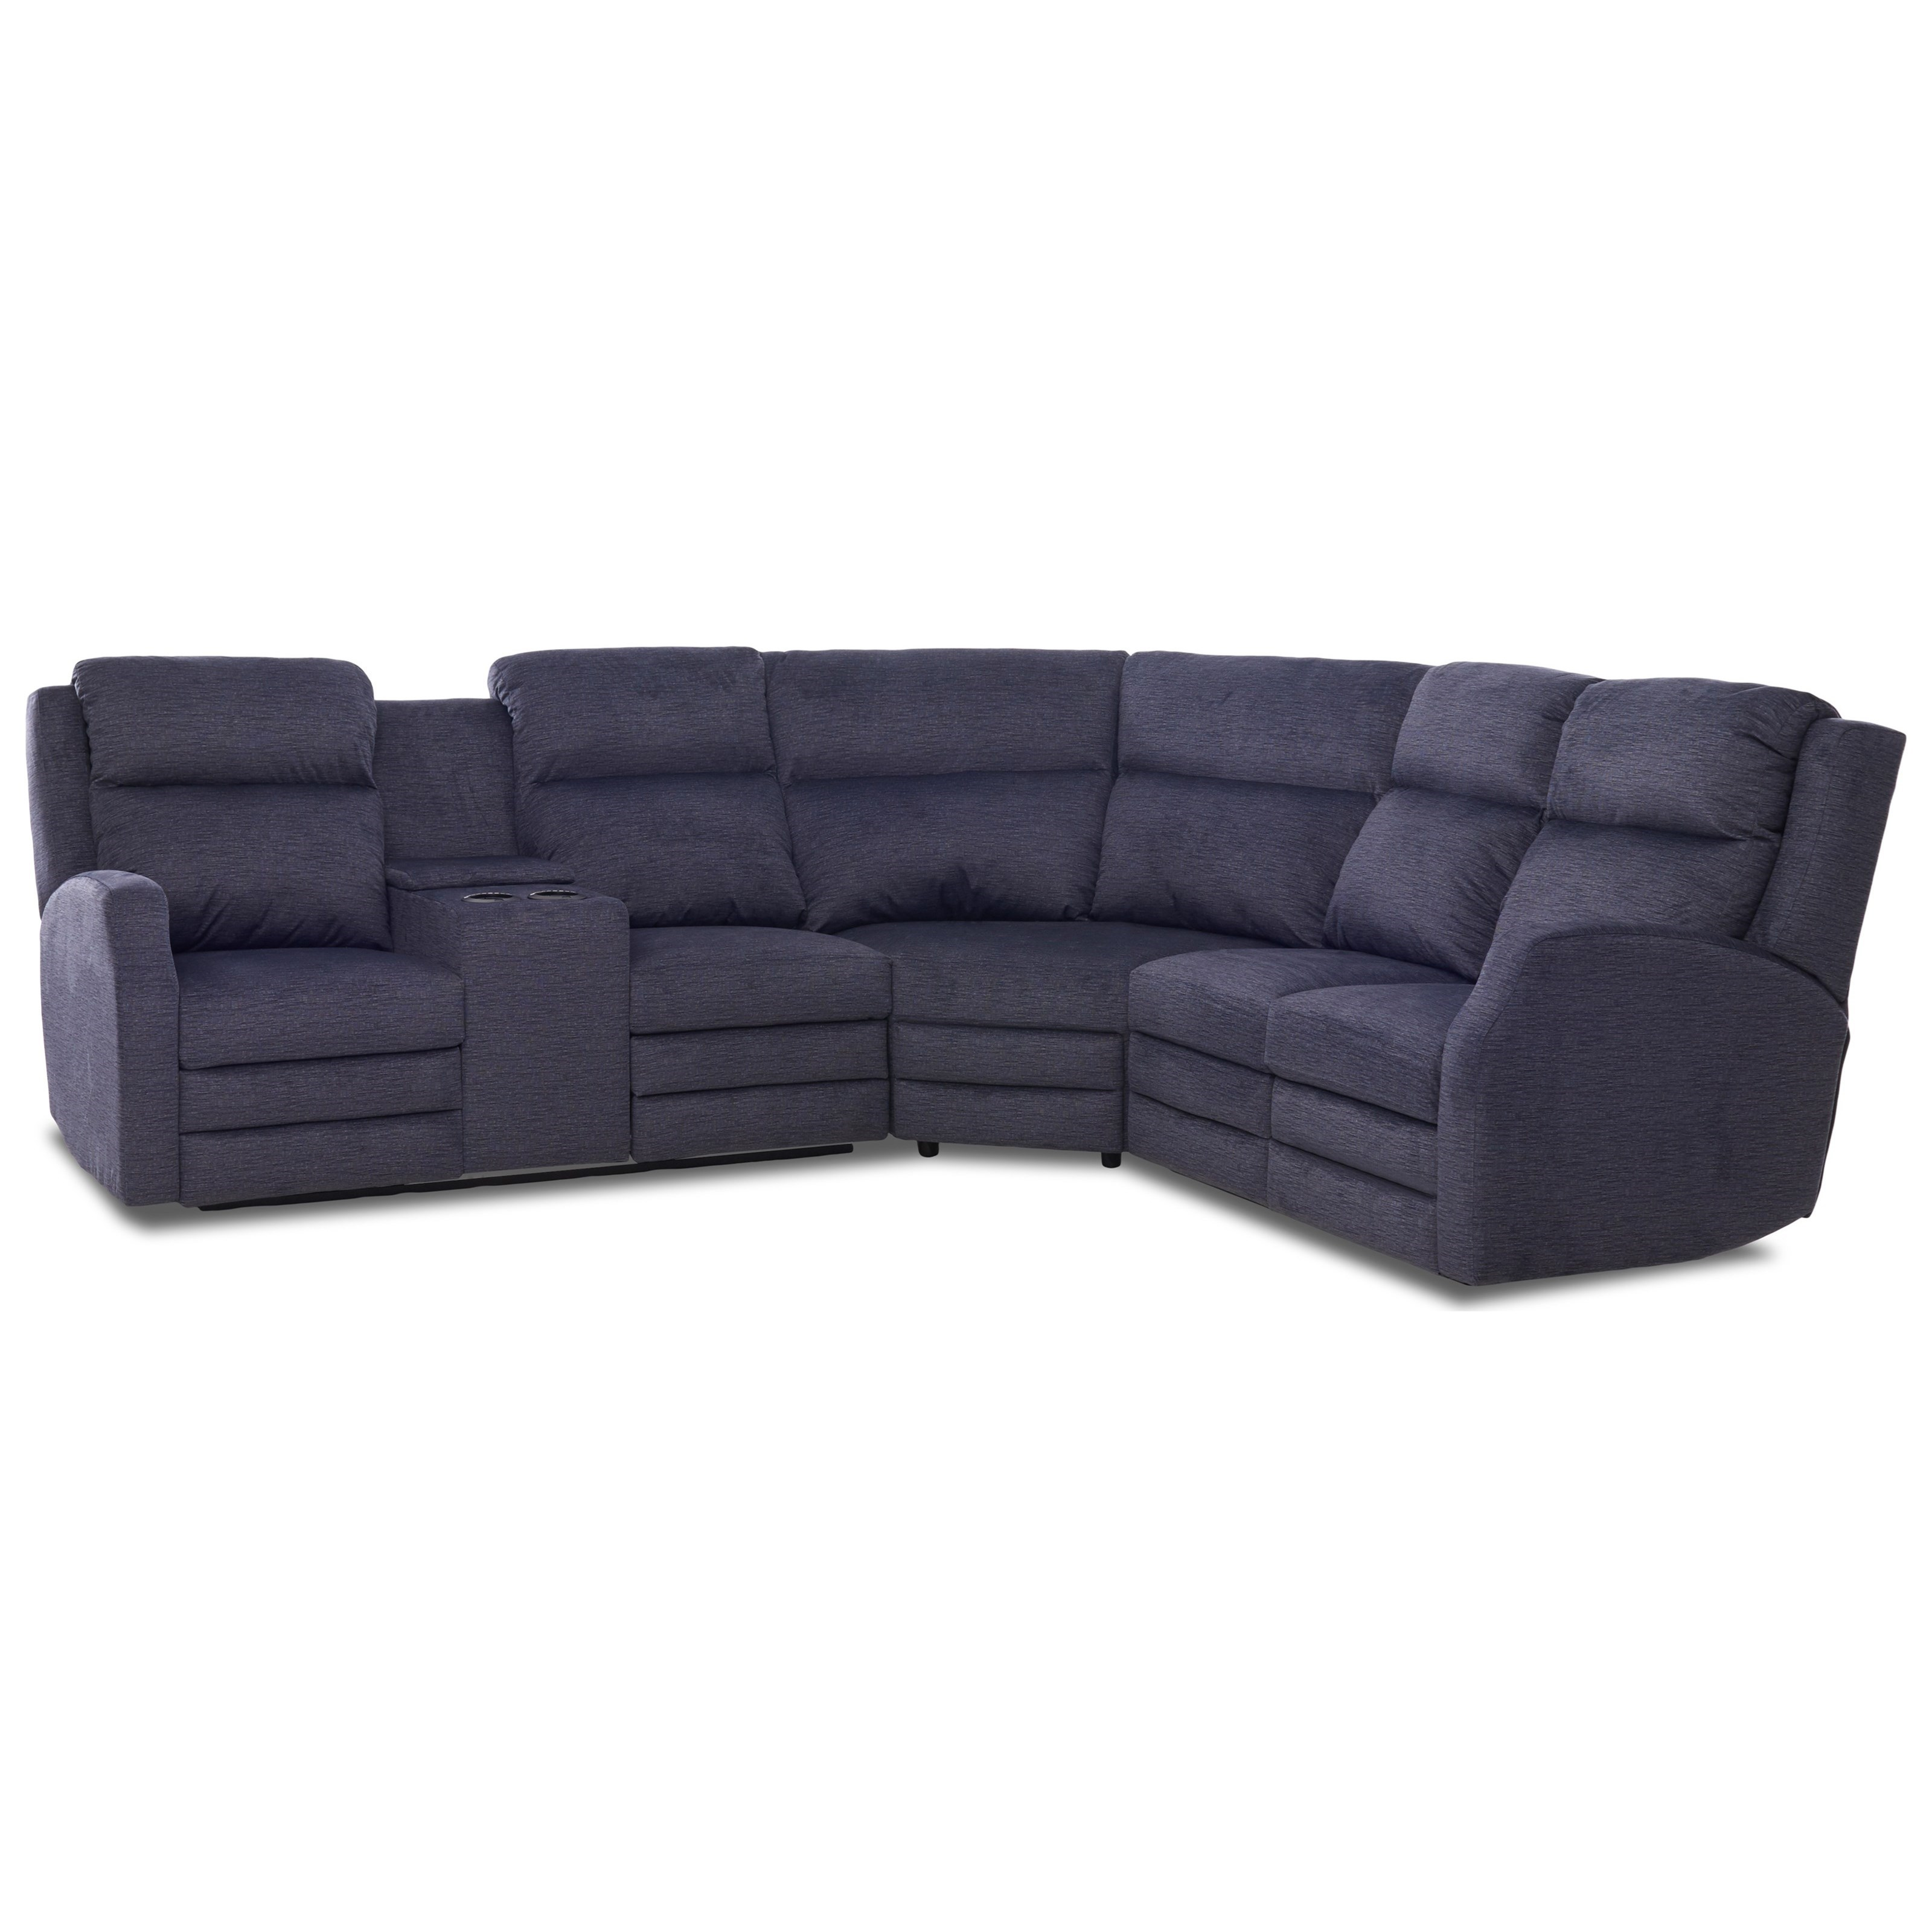 Four Seat Power Reclining Sectional Sofa with Power Headrests / Lumbar, Cupholder Storage Console, USB Charging Ports